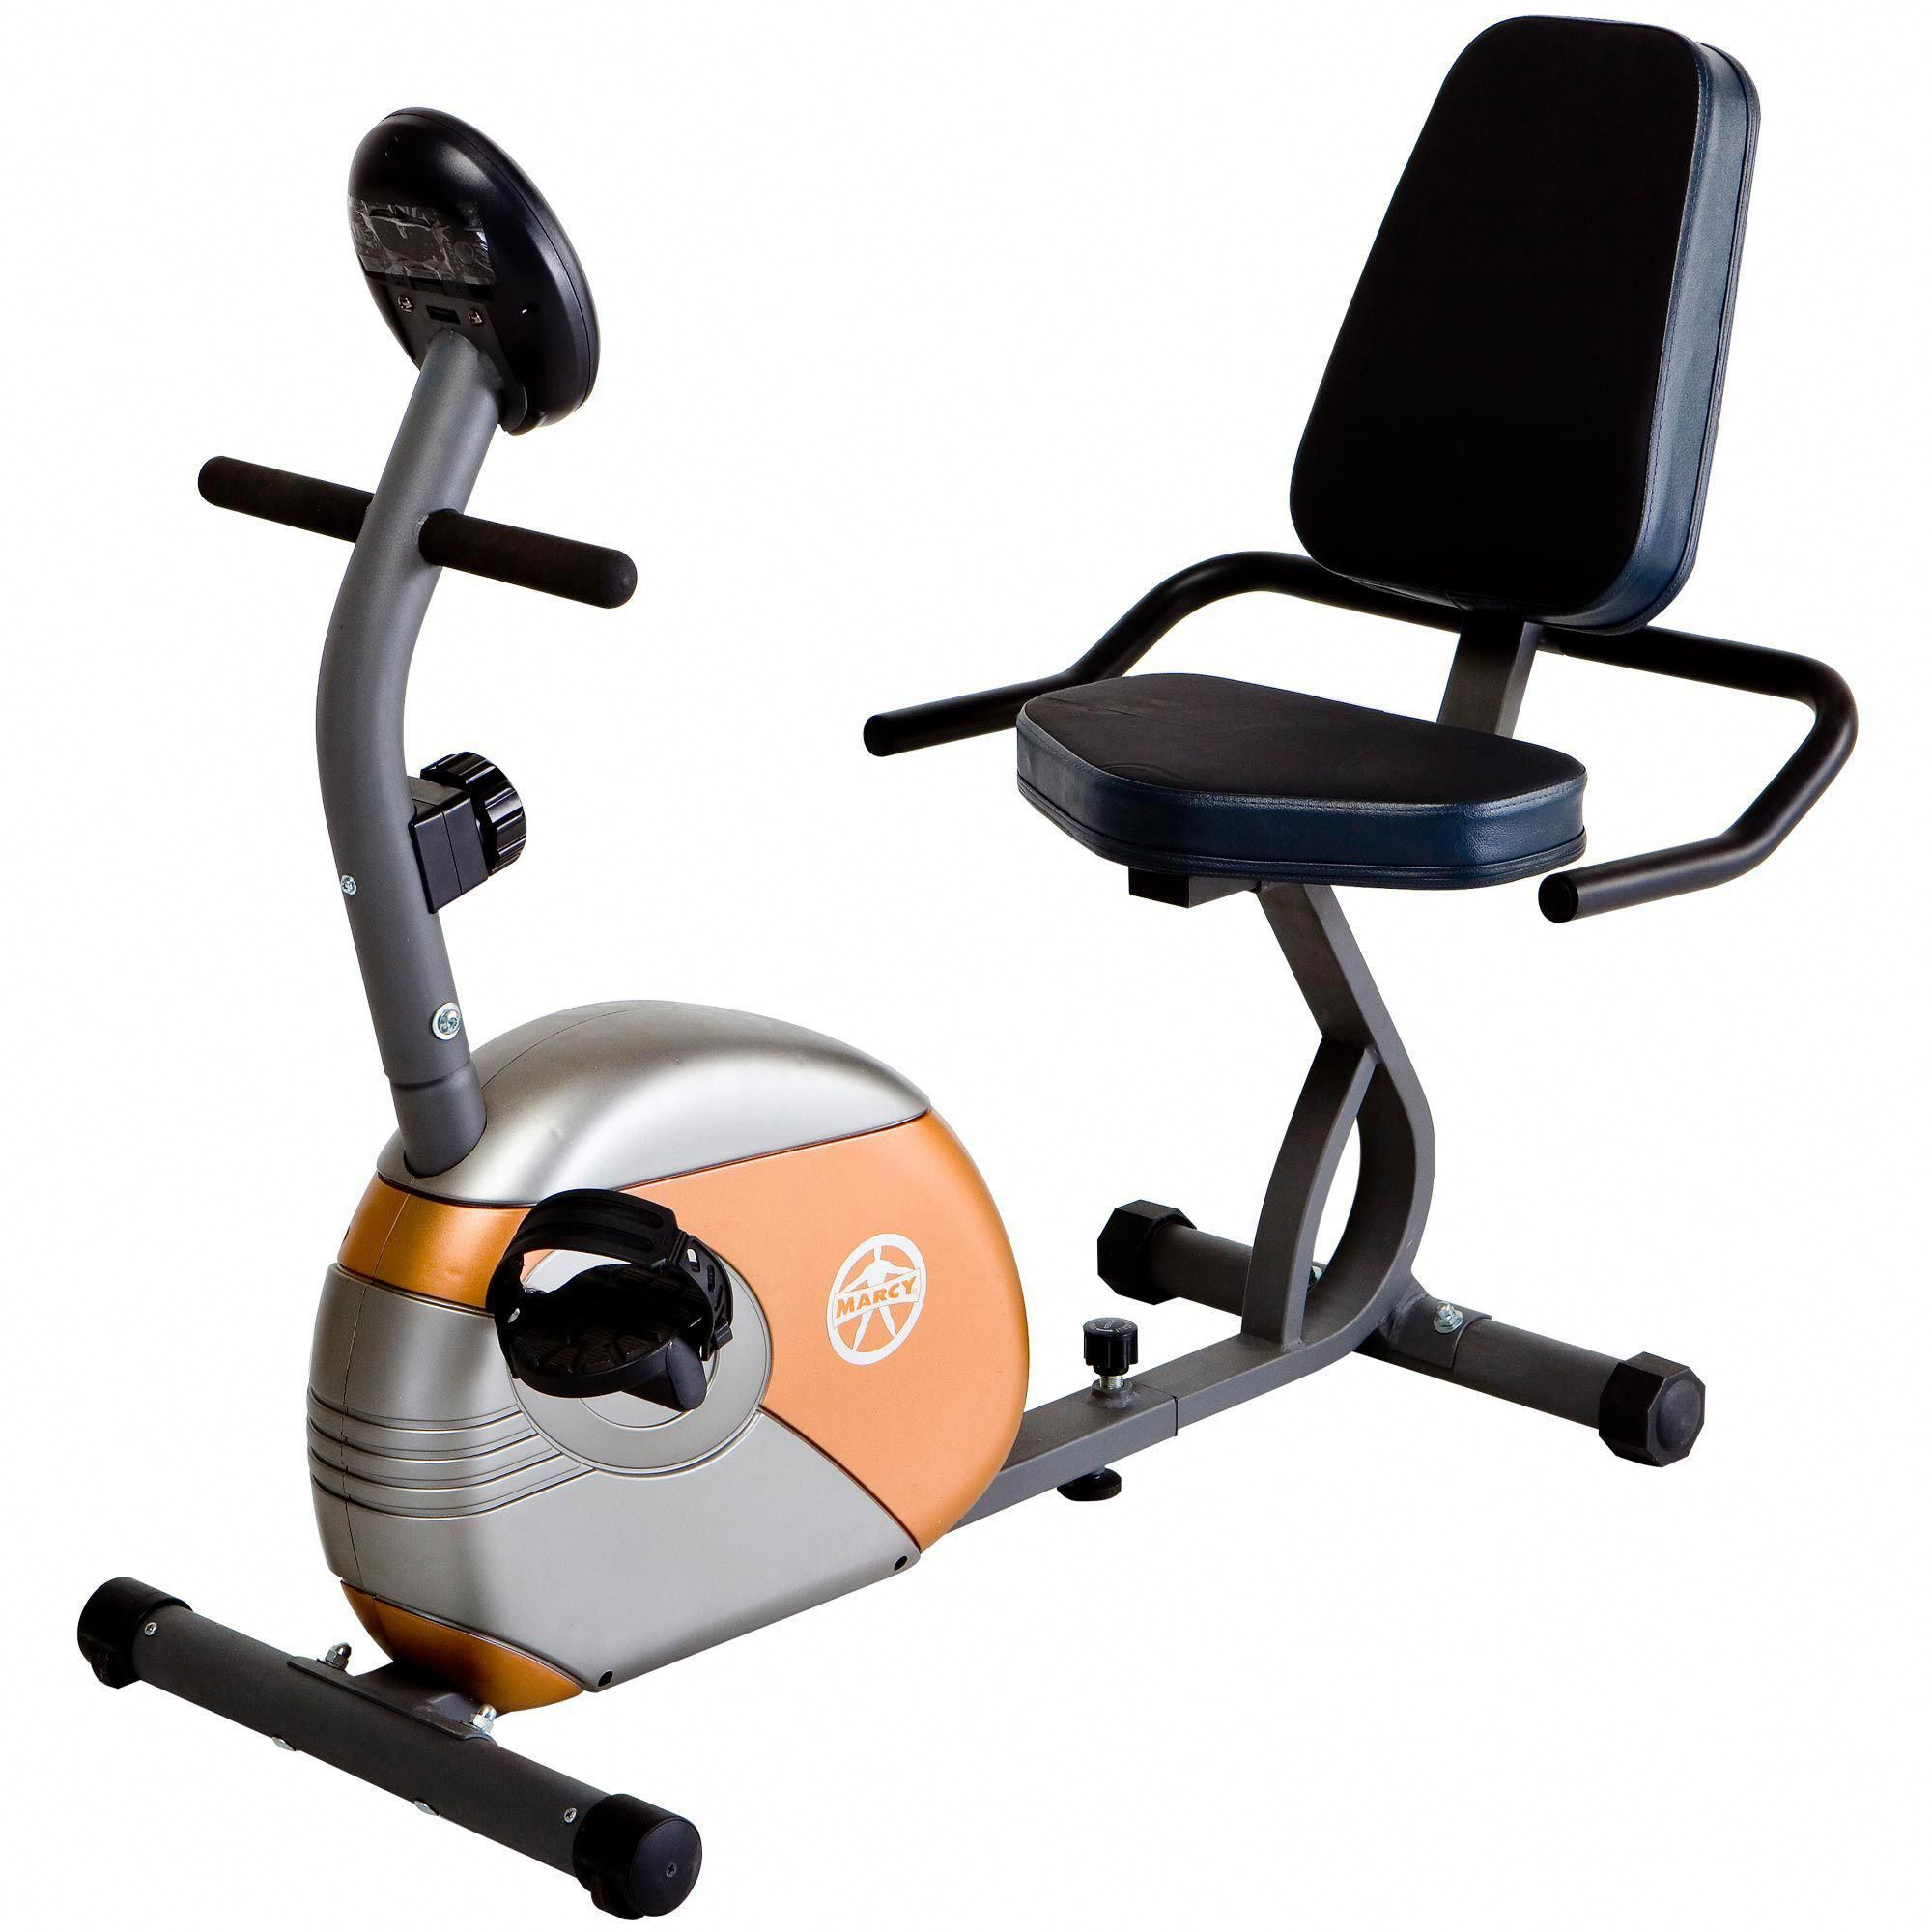 Marcy ME 709 Recumbent Exercise Bike | Recumbent bike workout ...